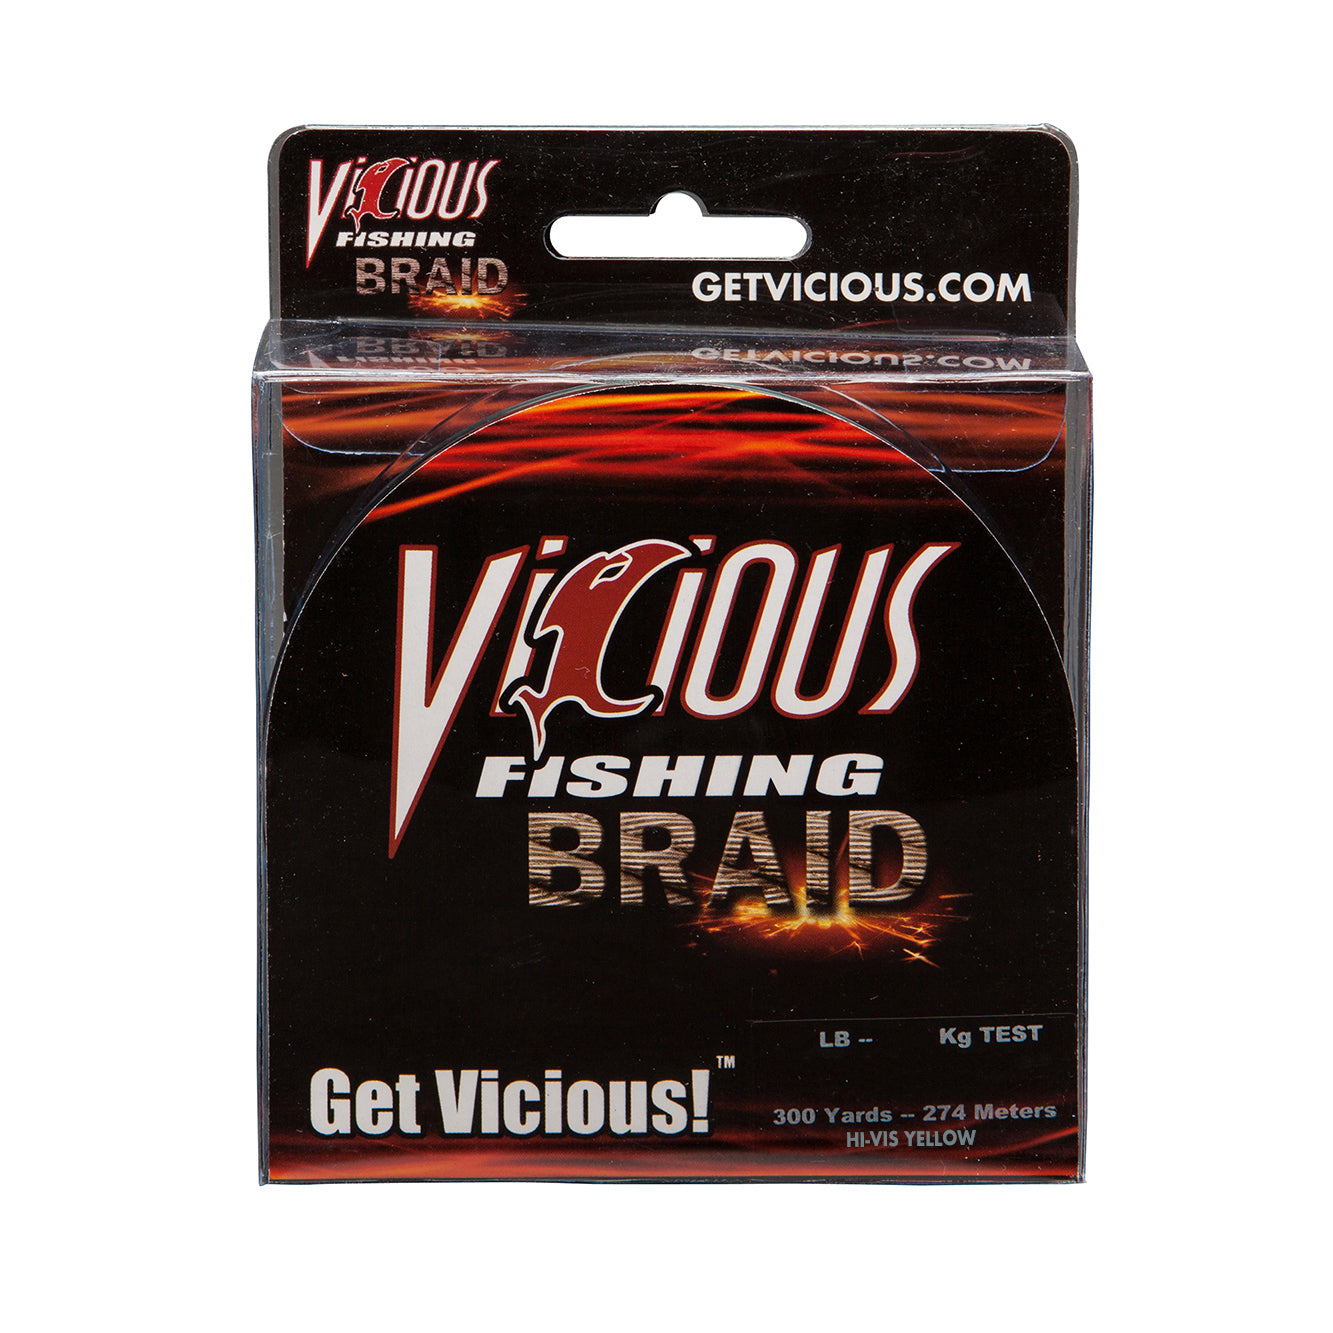 15lb Vicious Hi-Vis Yellow Braid - 300 Yards